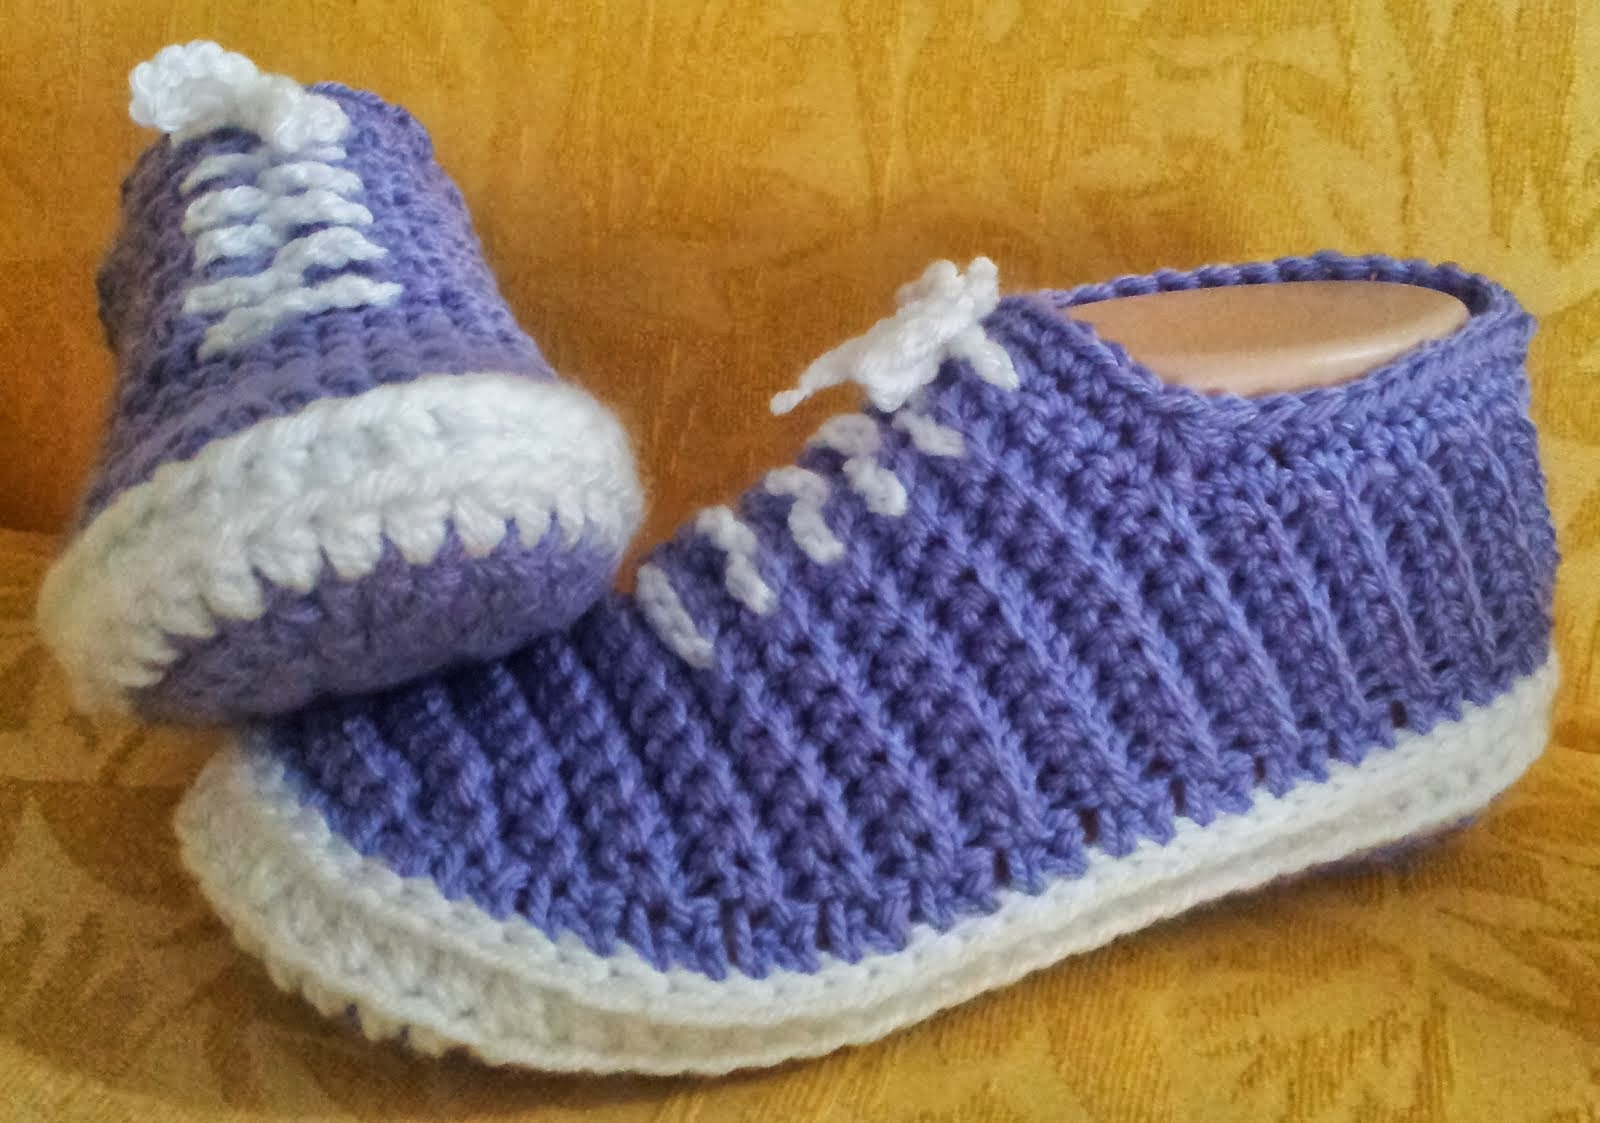 Crochet Patterns Slippers : This pattern is cheap, not free. Click on the links below to find it.